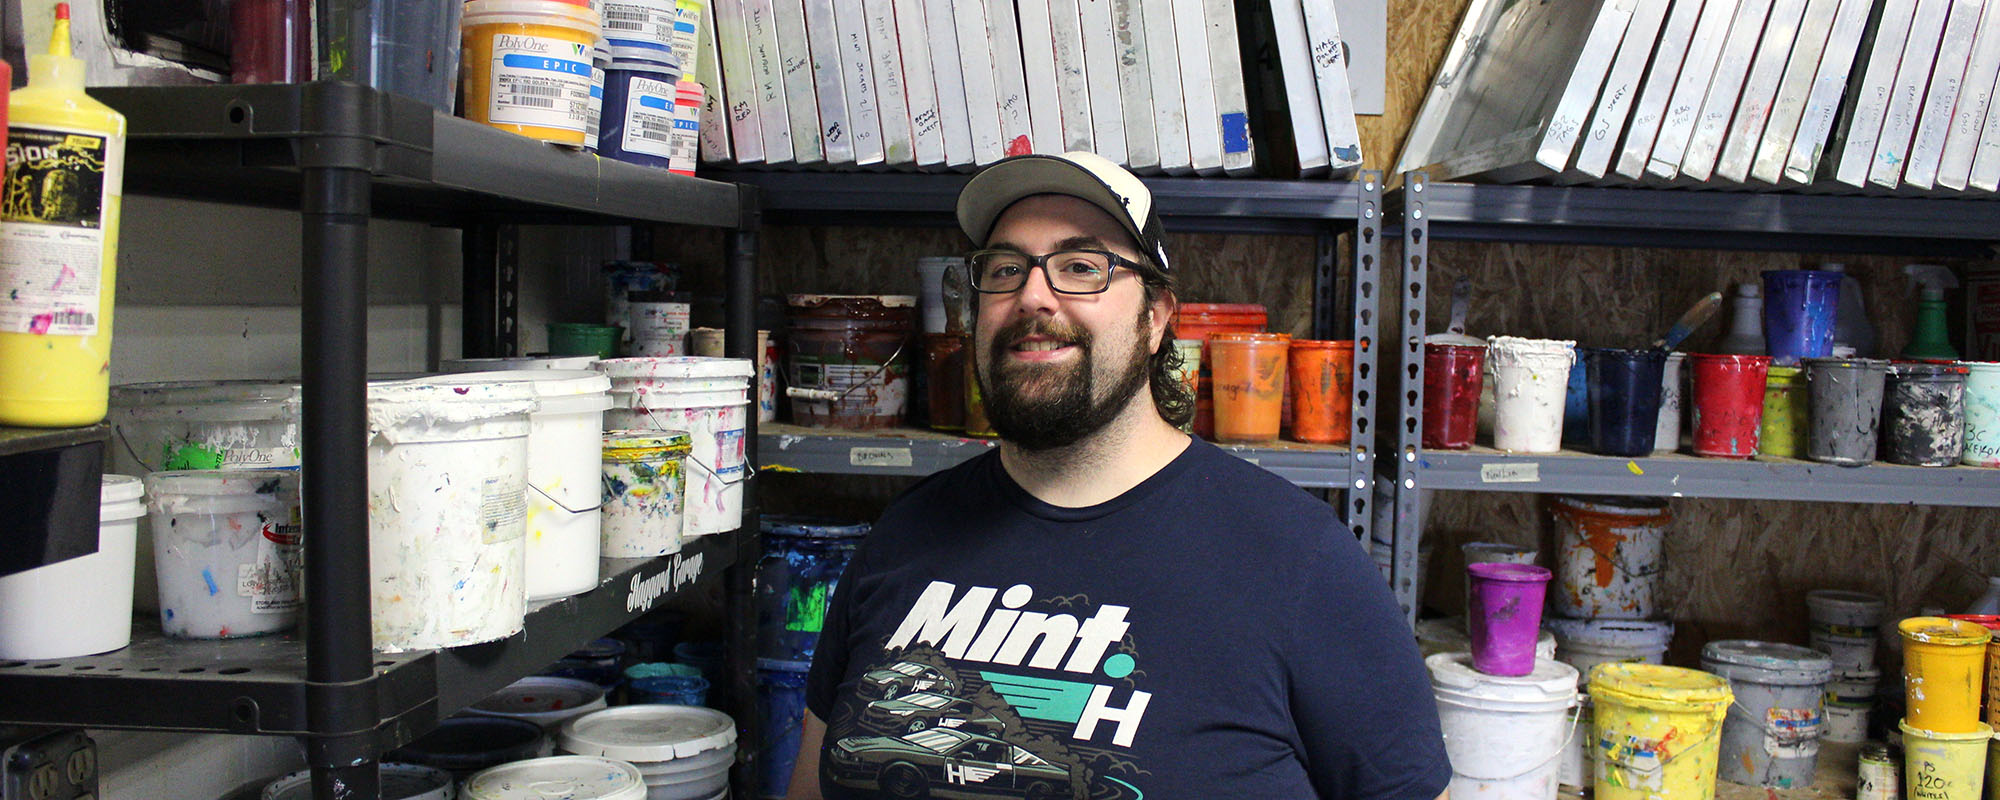 Jeff Clarke of Strange Planet Printing standing in front of a wall of screens and custom mixed Pantone inks for screen printing.